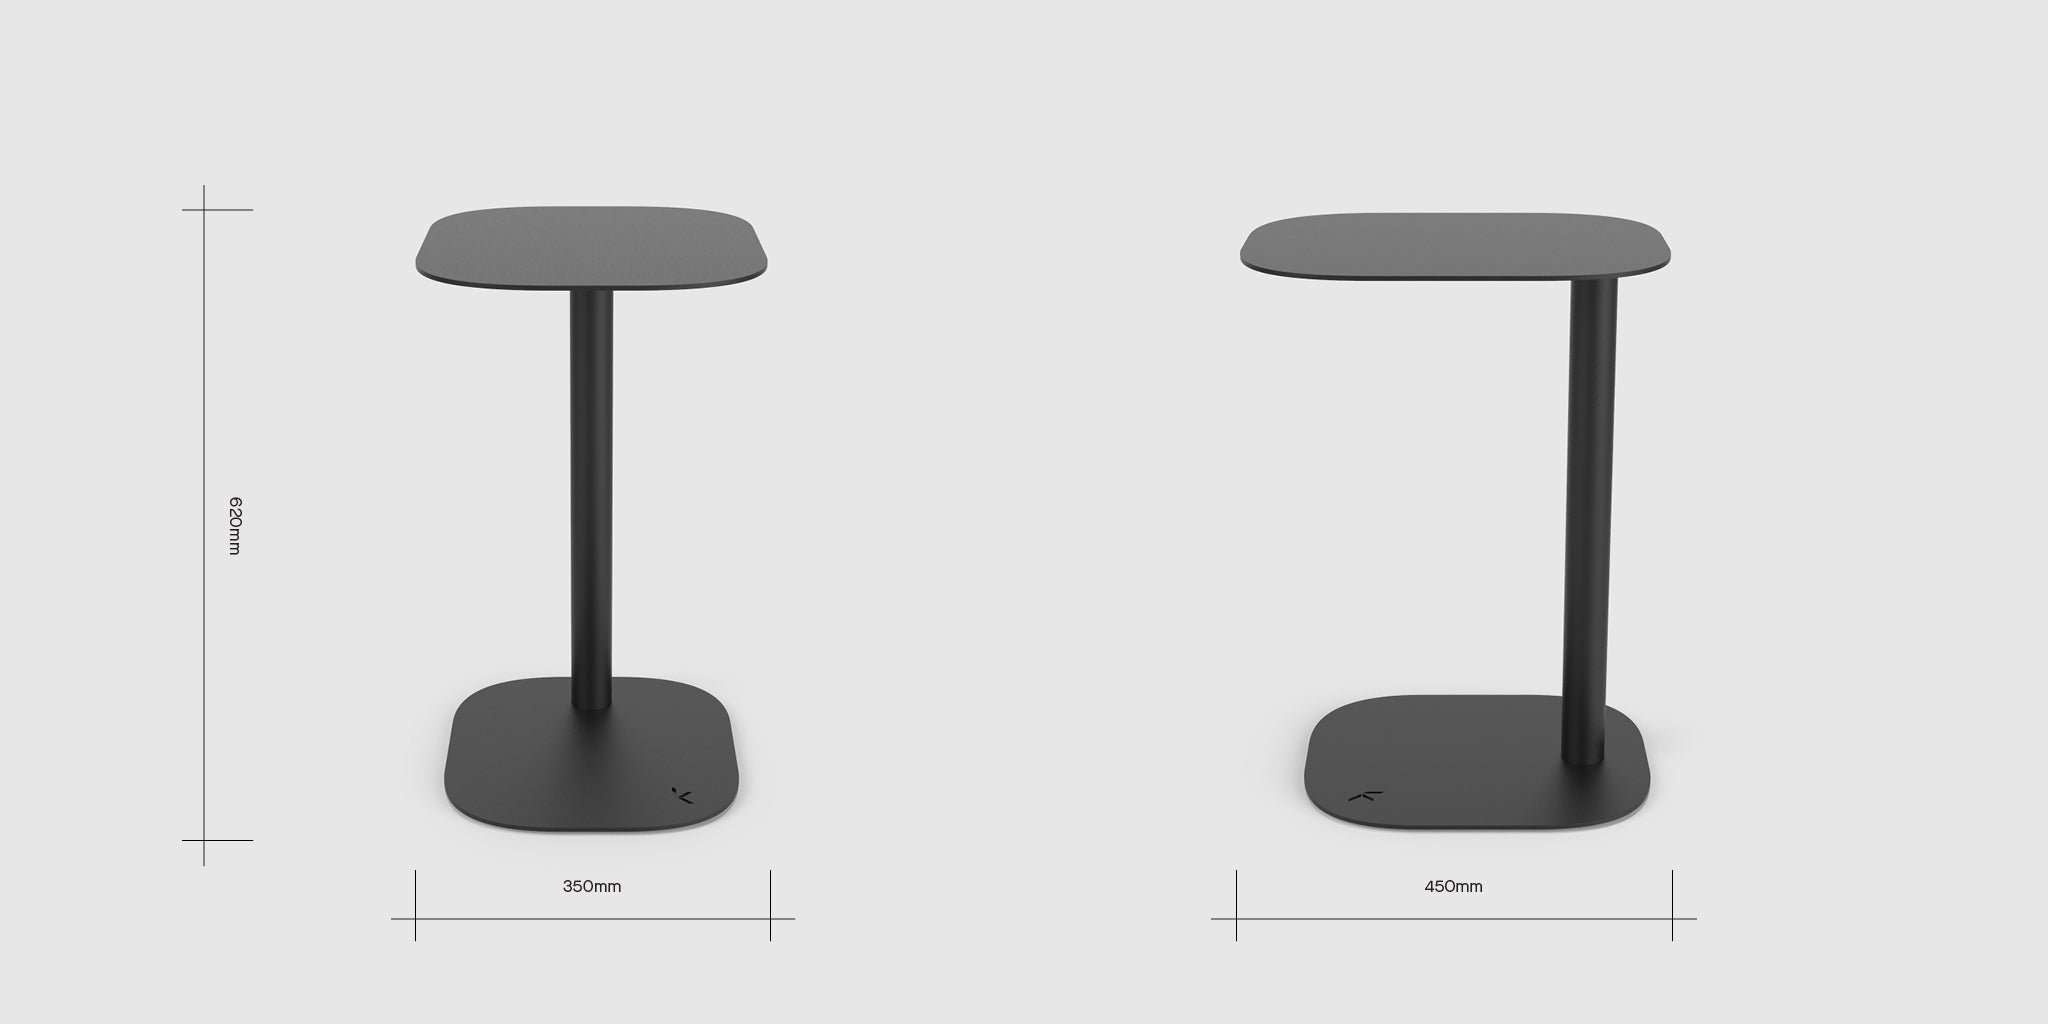 Laptop Table Dimensions